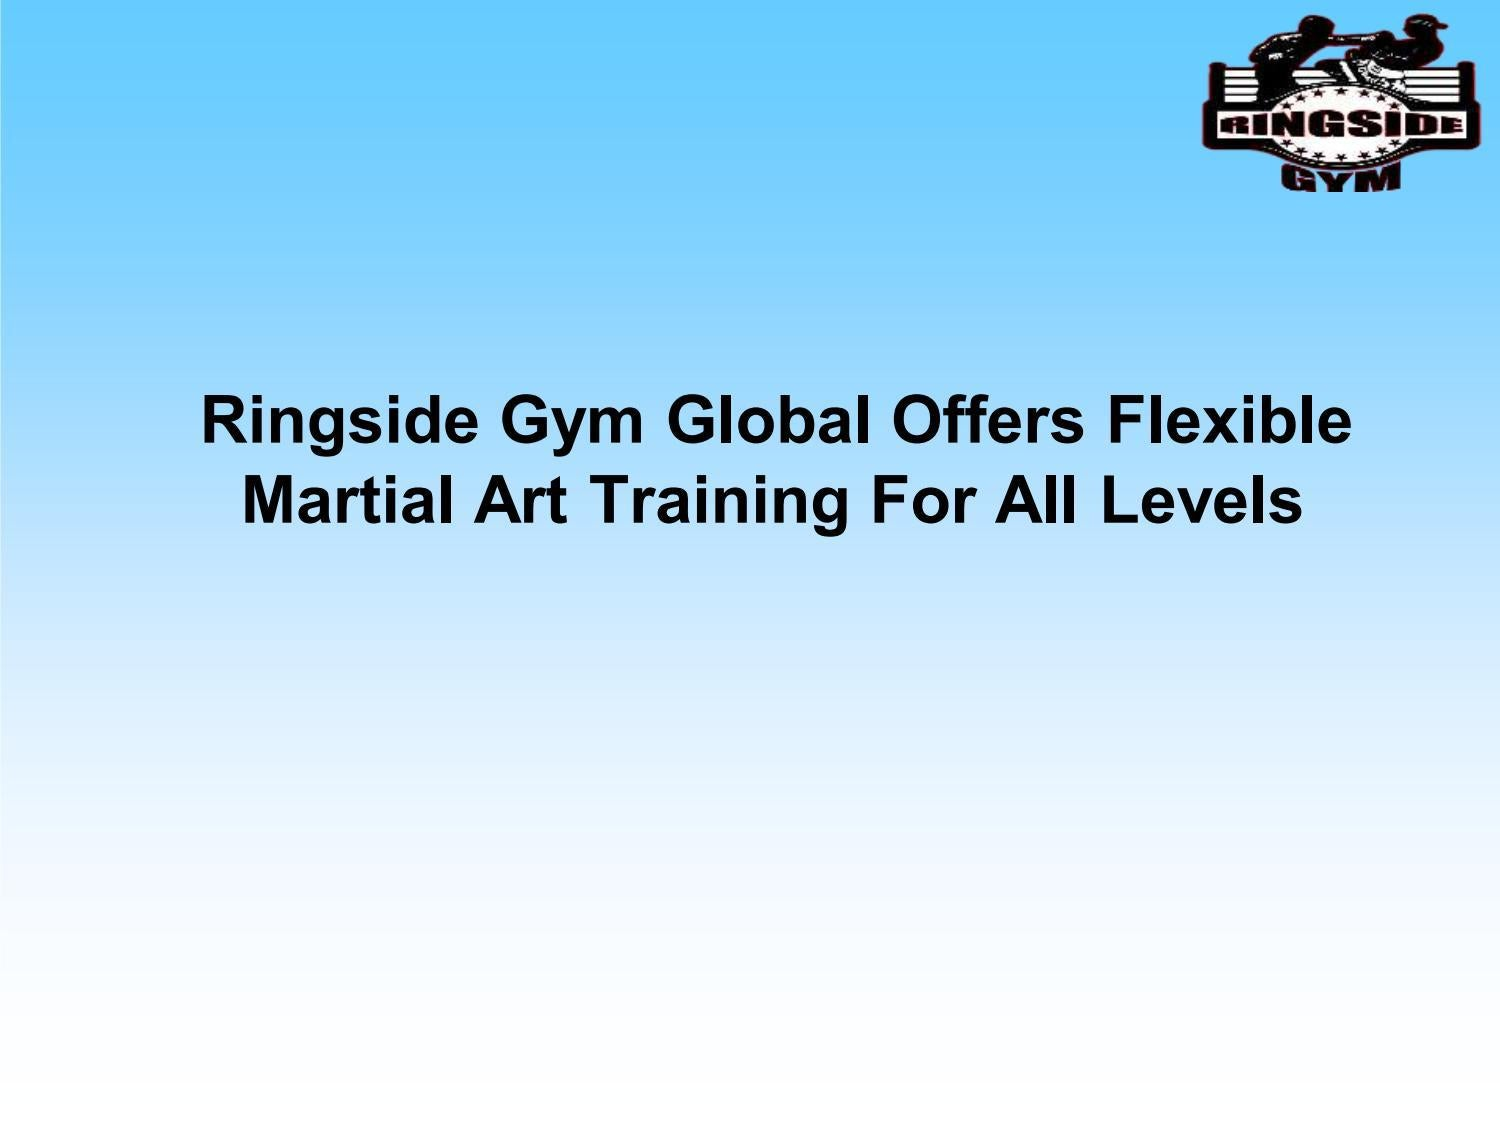 Ringside Gym Global Offers Flexible Martial Art Training For All Levels